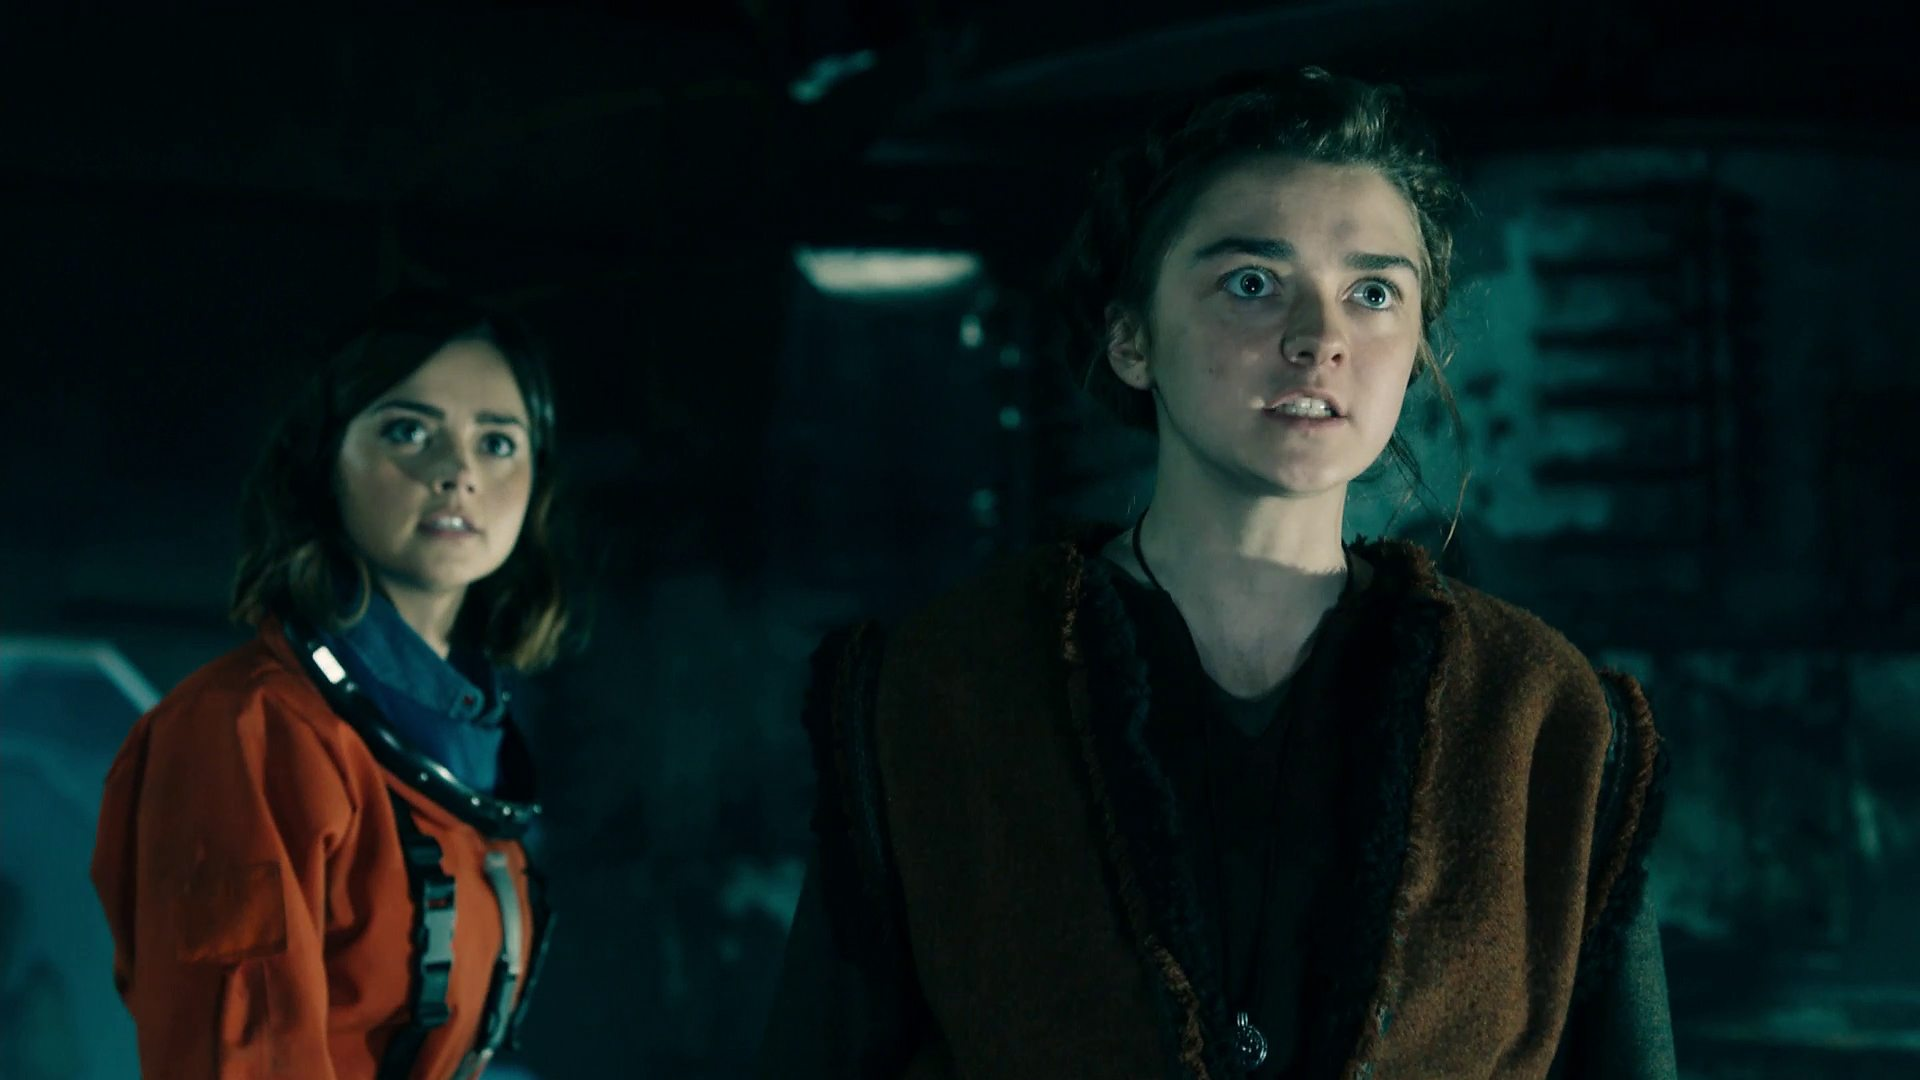 Doctor Who and Arya Stark are an amazing combo